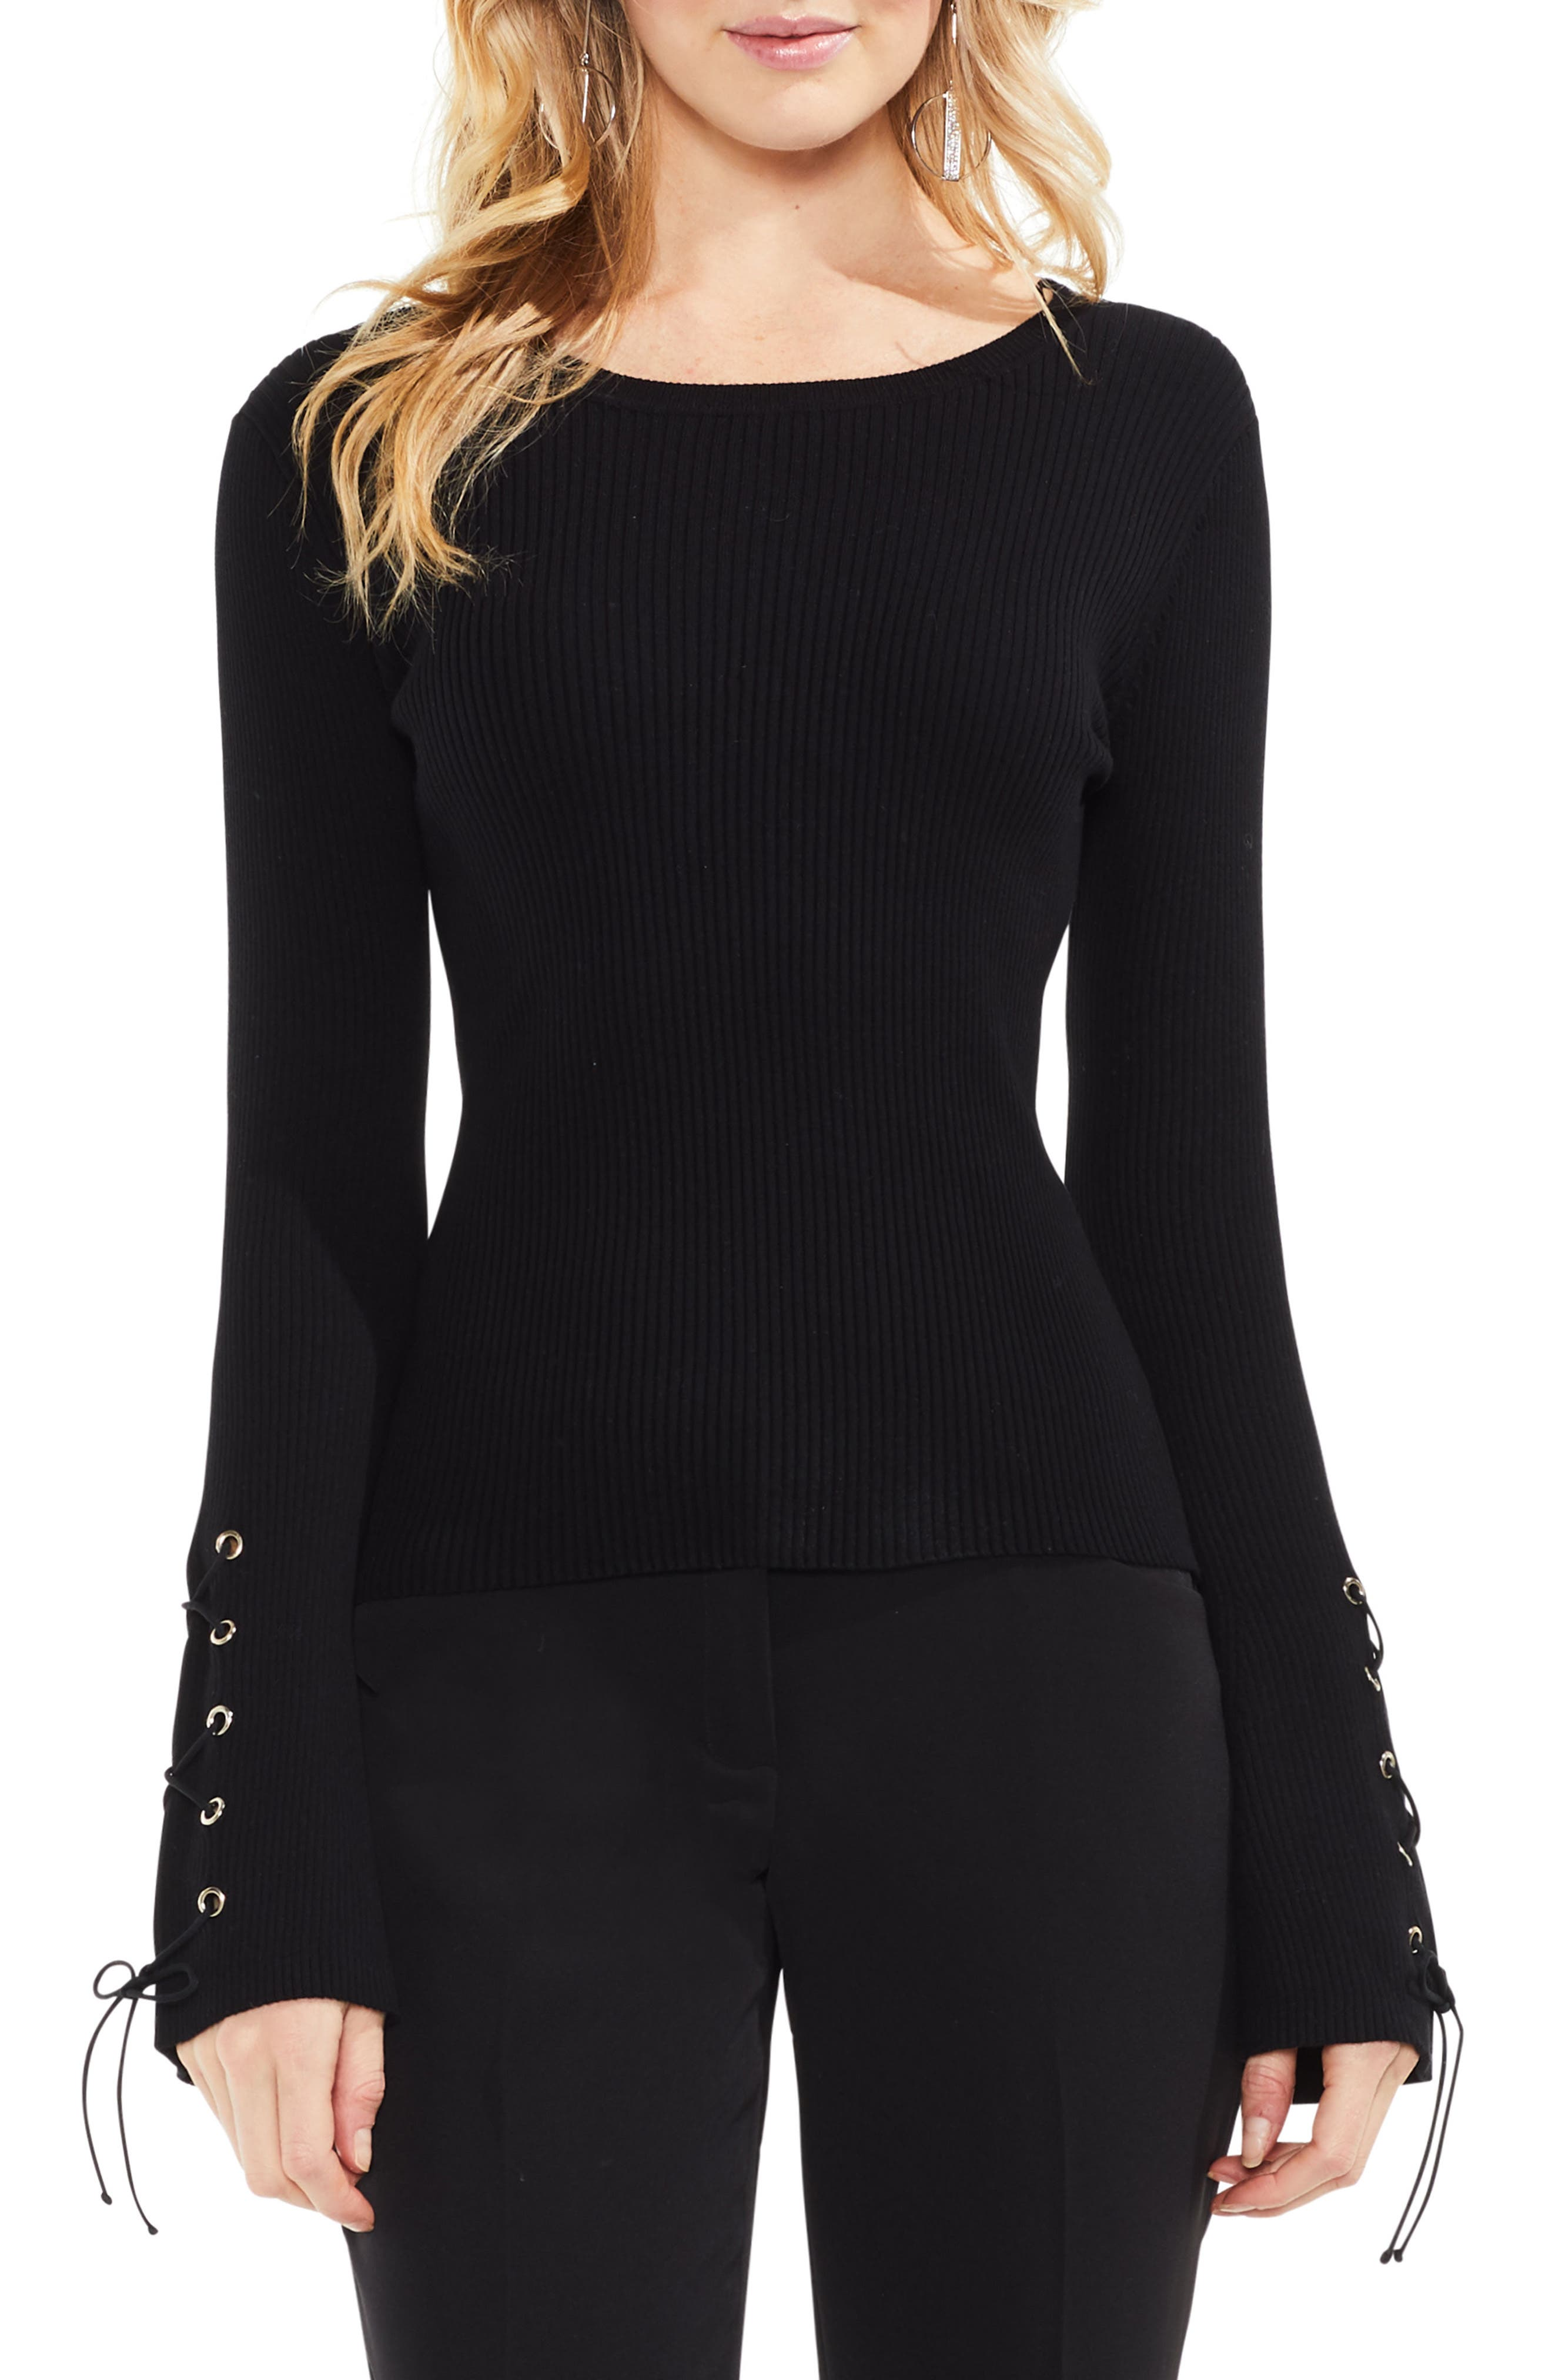 Main Image - Vince Camuto Lace-Up Bell Sleeve Ribbed Sweater (Regular & Petite)